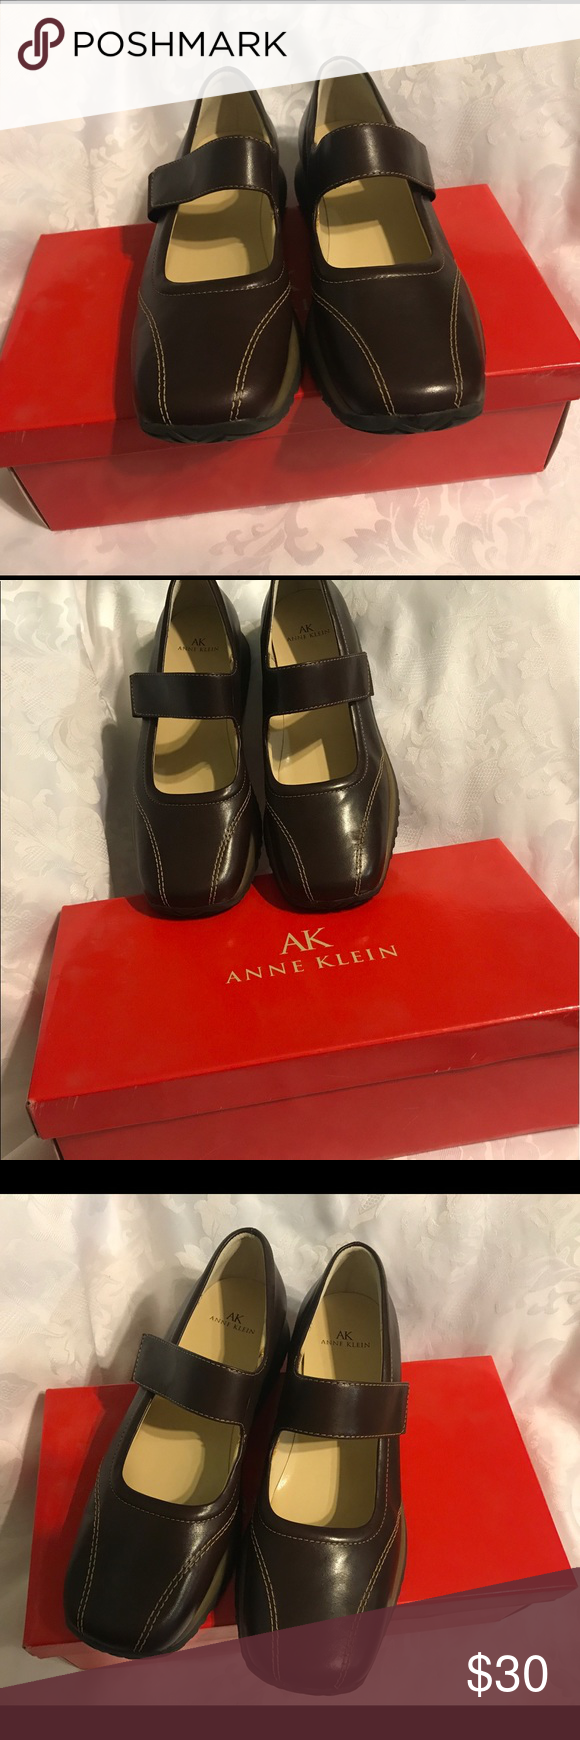 Ak Anne Klein shoes Brand new, chocolate color, leather upper, size 8m, Anne Klein Shoes Flats & Loafers